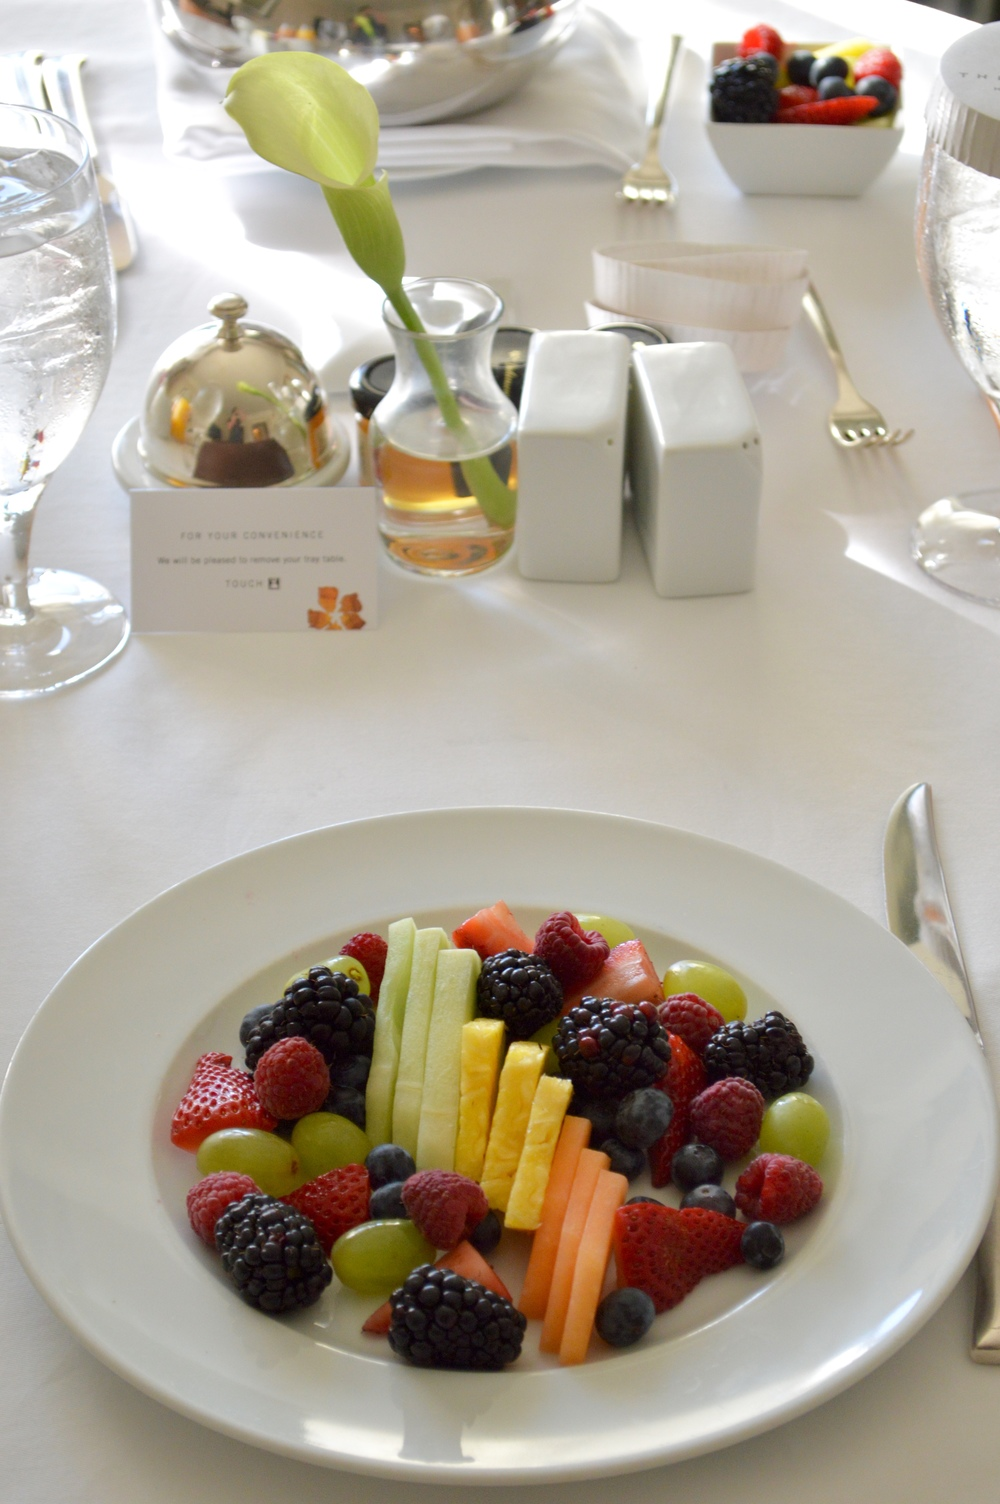 LaurenSchwaiger-Blog-The-Umstead-Hotel-Breakfast-Fruit.jpg